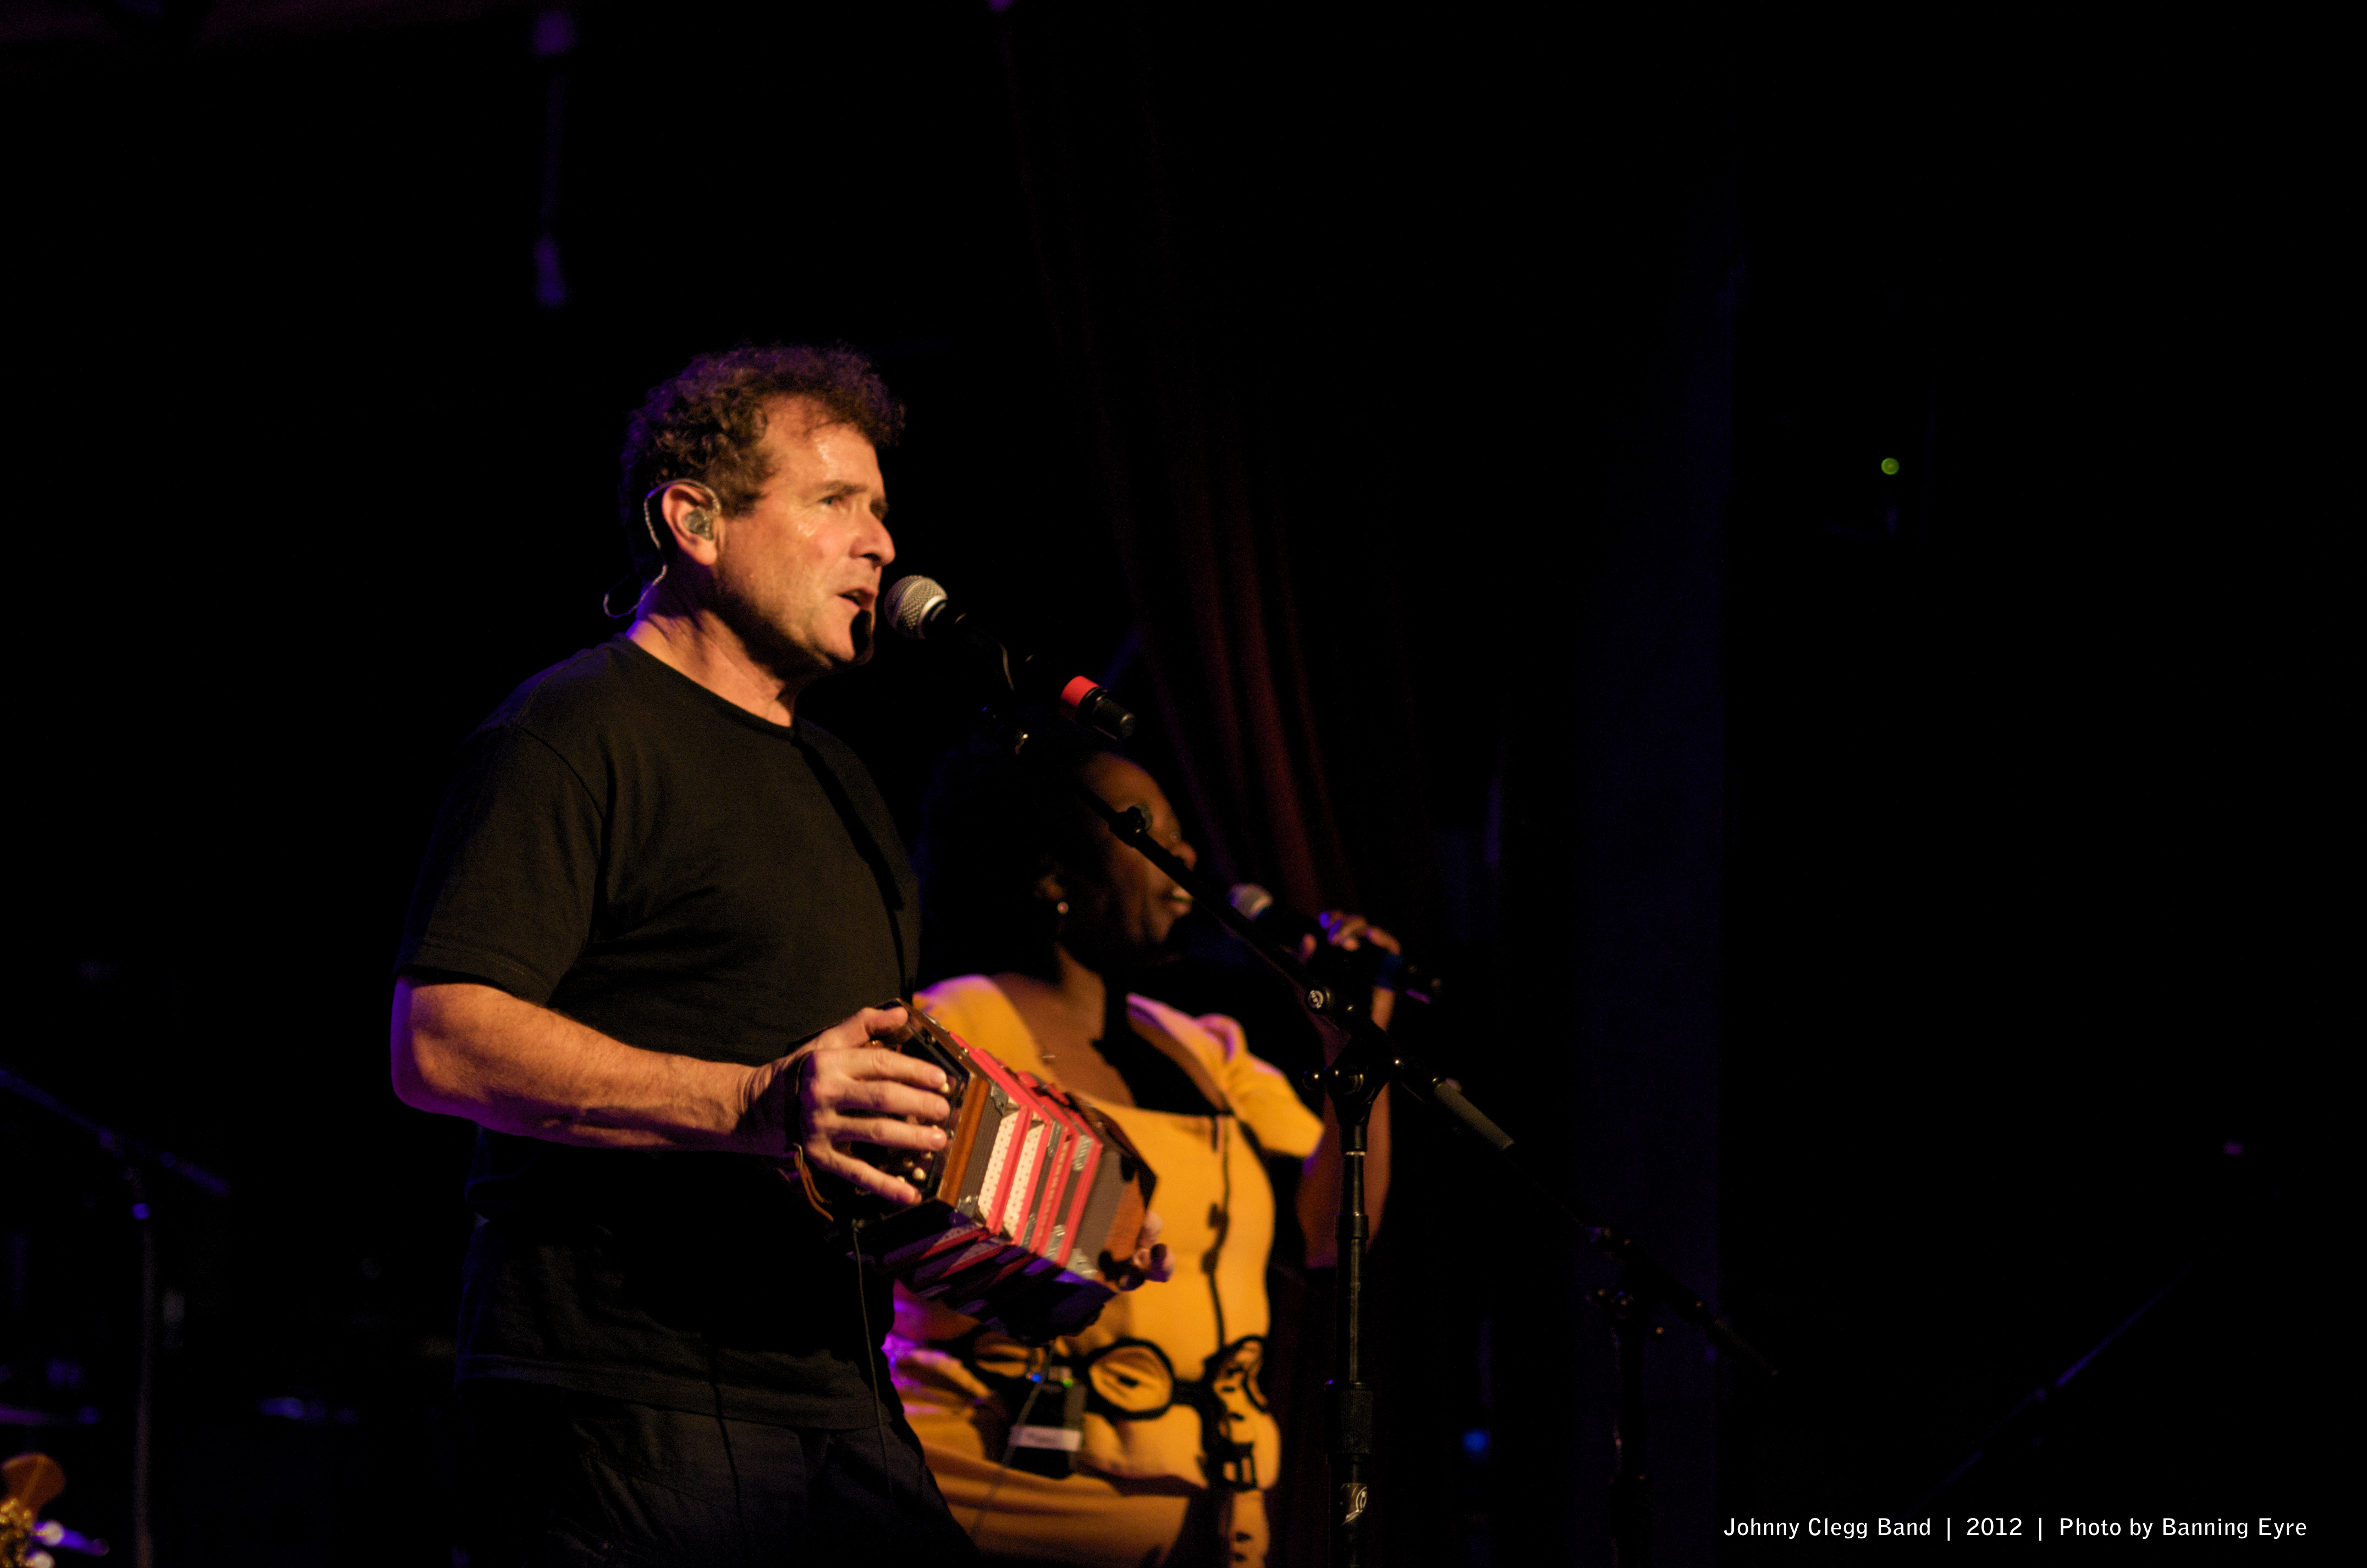 Johnny Clegg Band - Publicity Images